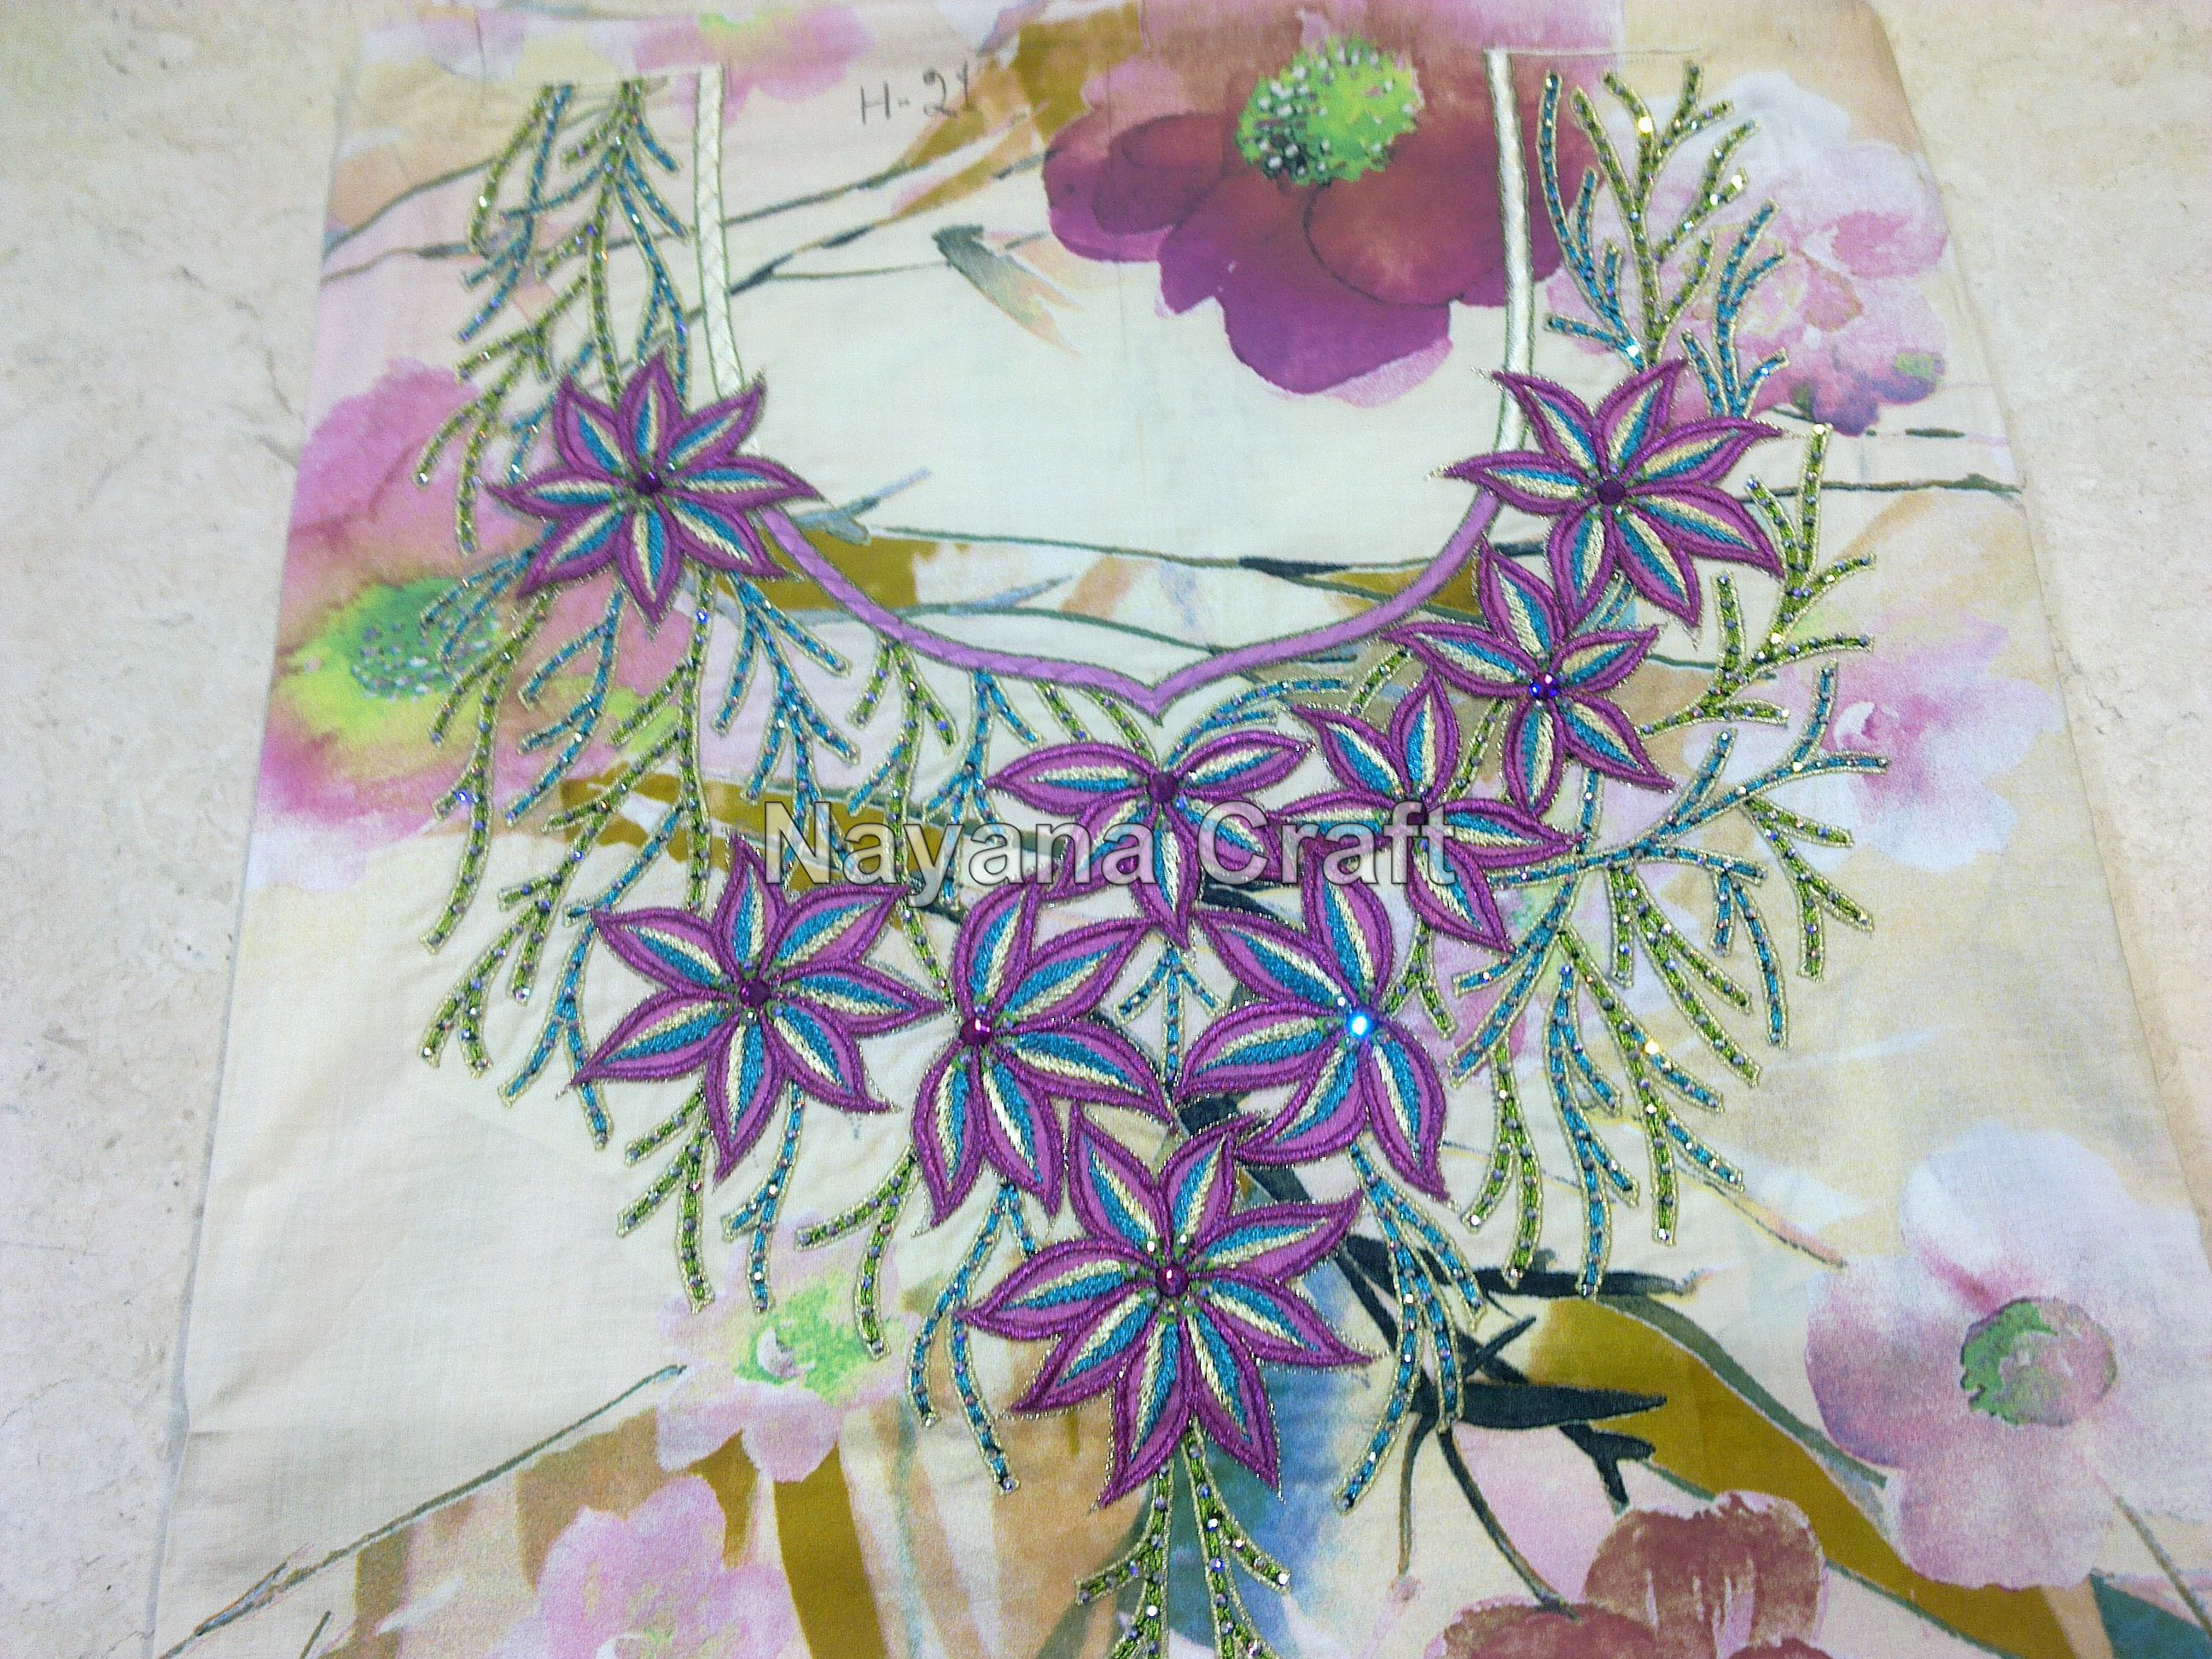 Learn free machine embroidery designs,how to create embroidery designs,embroidery library,,free motion embroidery designs,nayana craft,designs online